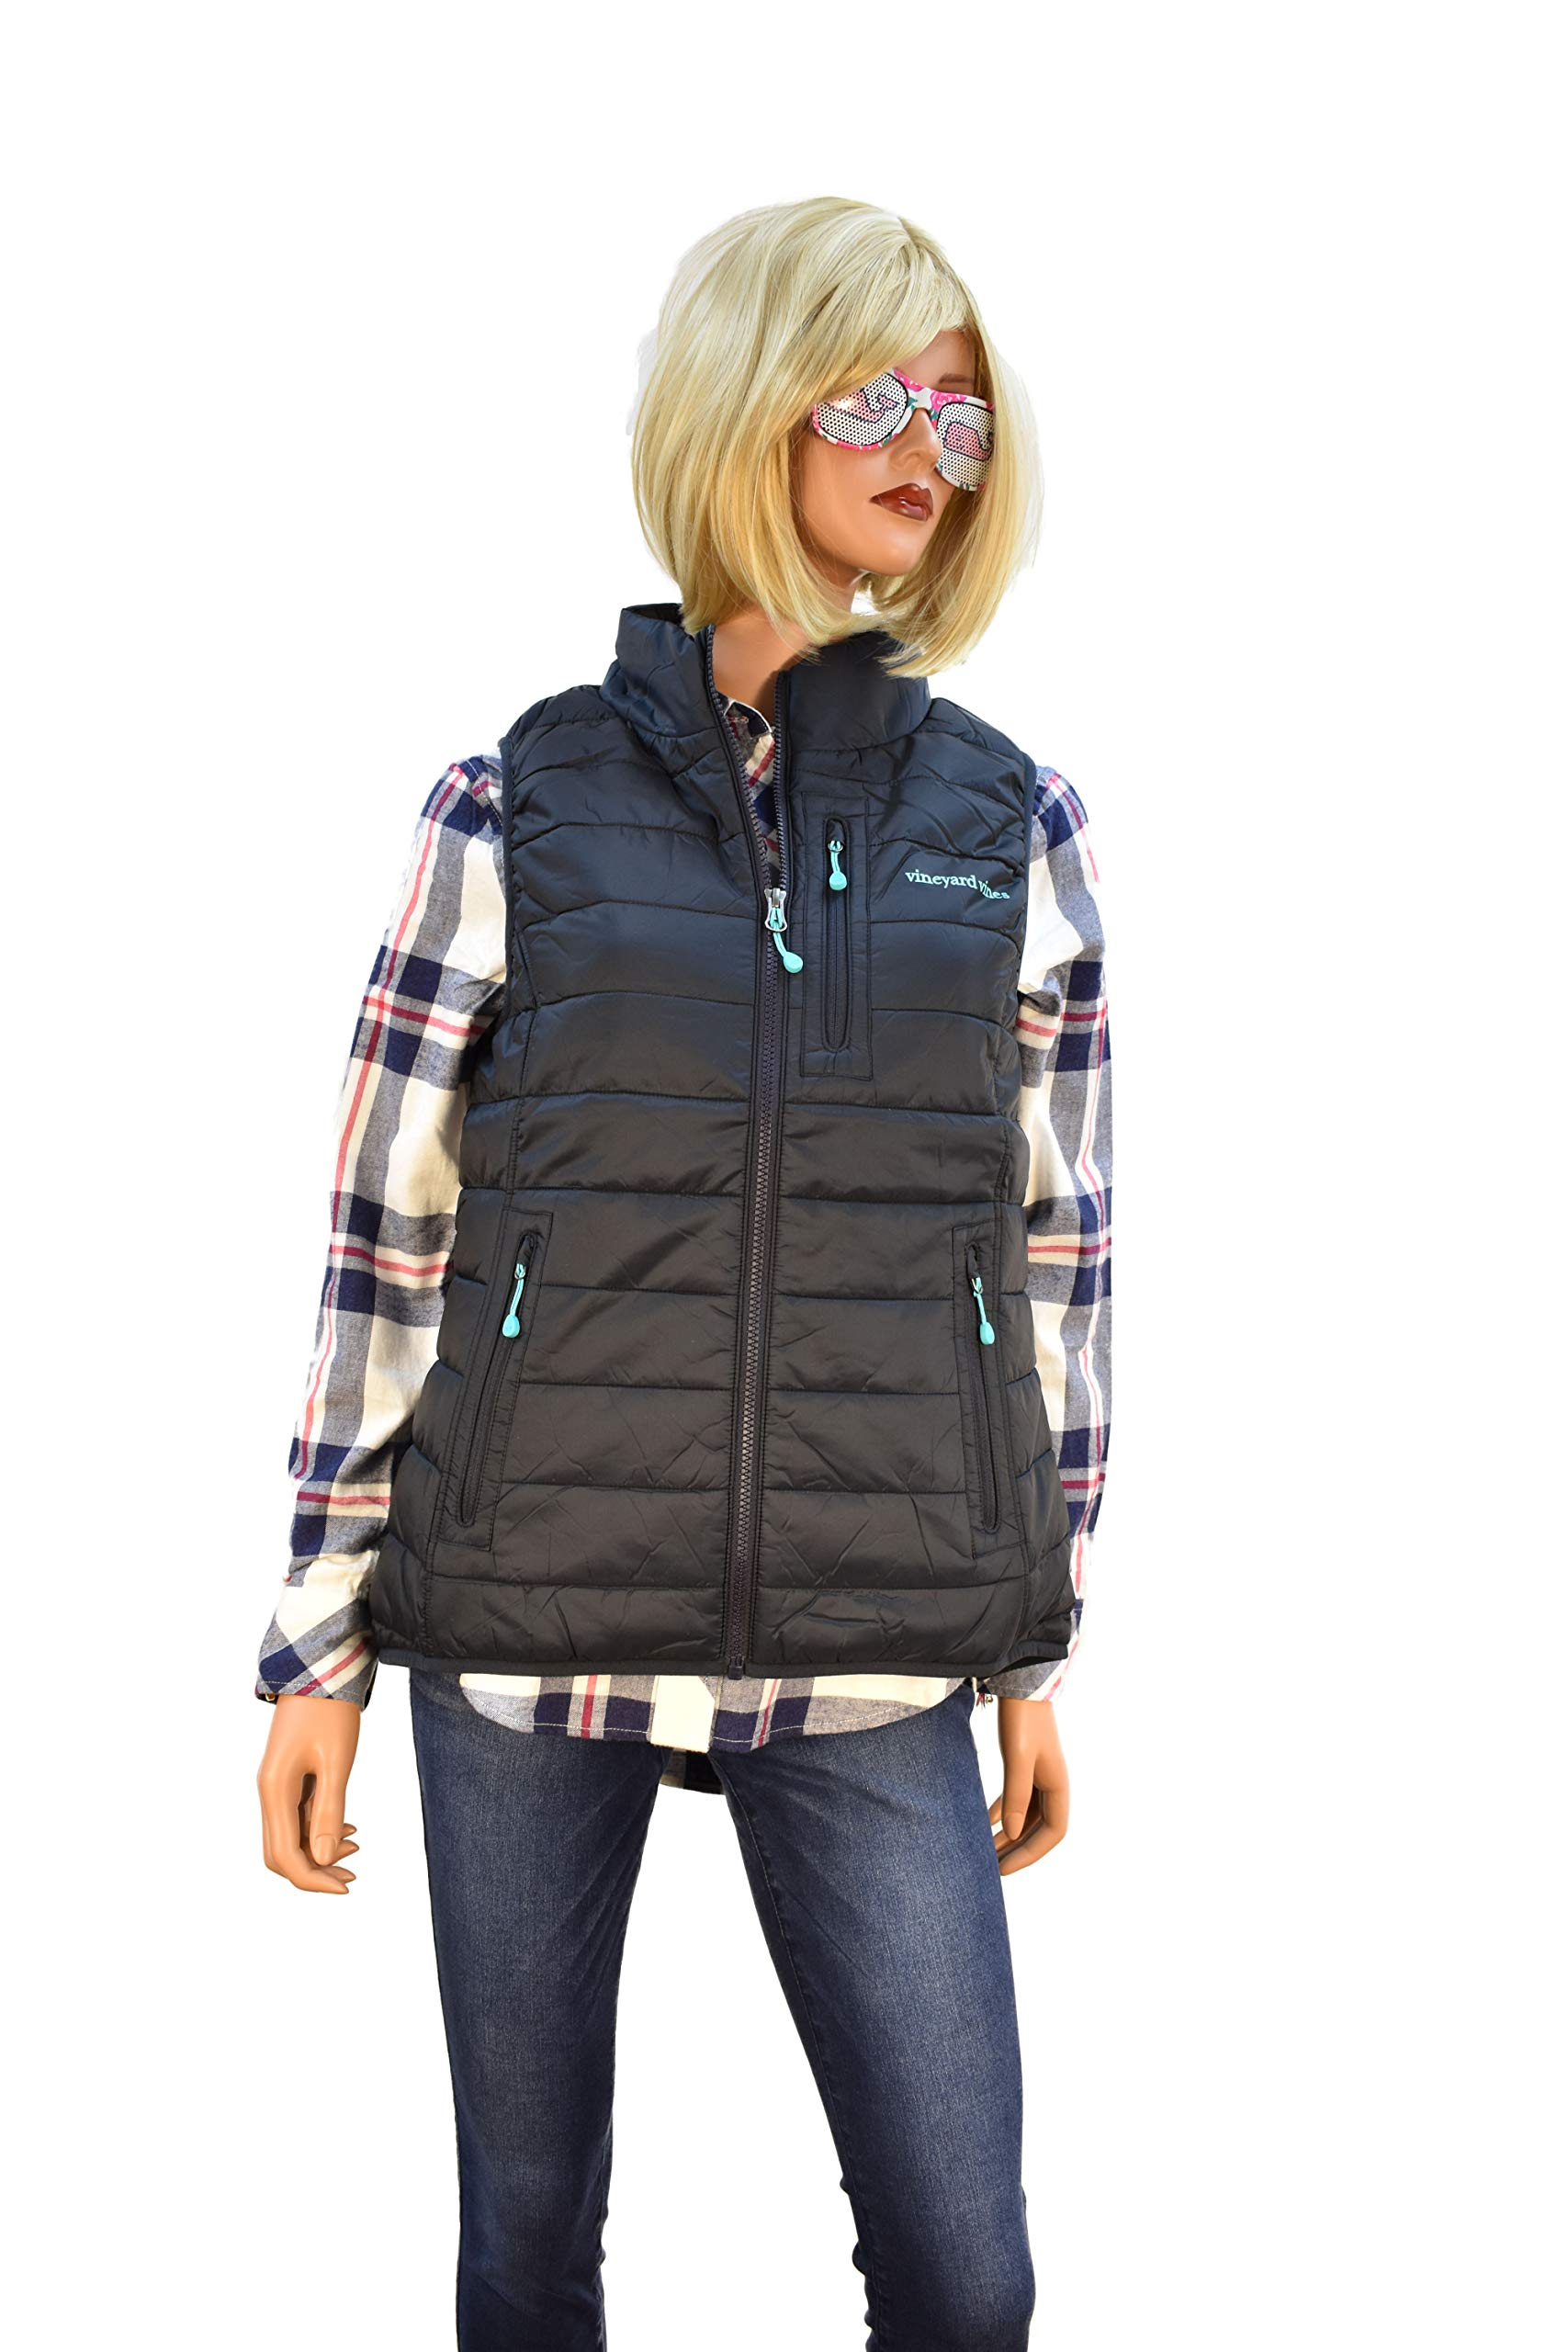 Vineyard Vines Women's Puffer Vest Rhododendron Pink (X-Small, Jet Black)